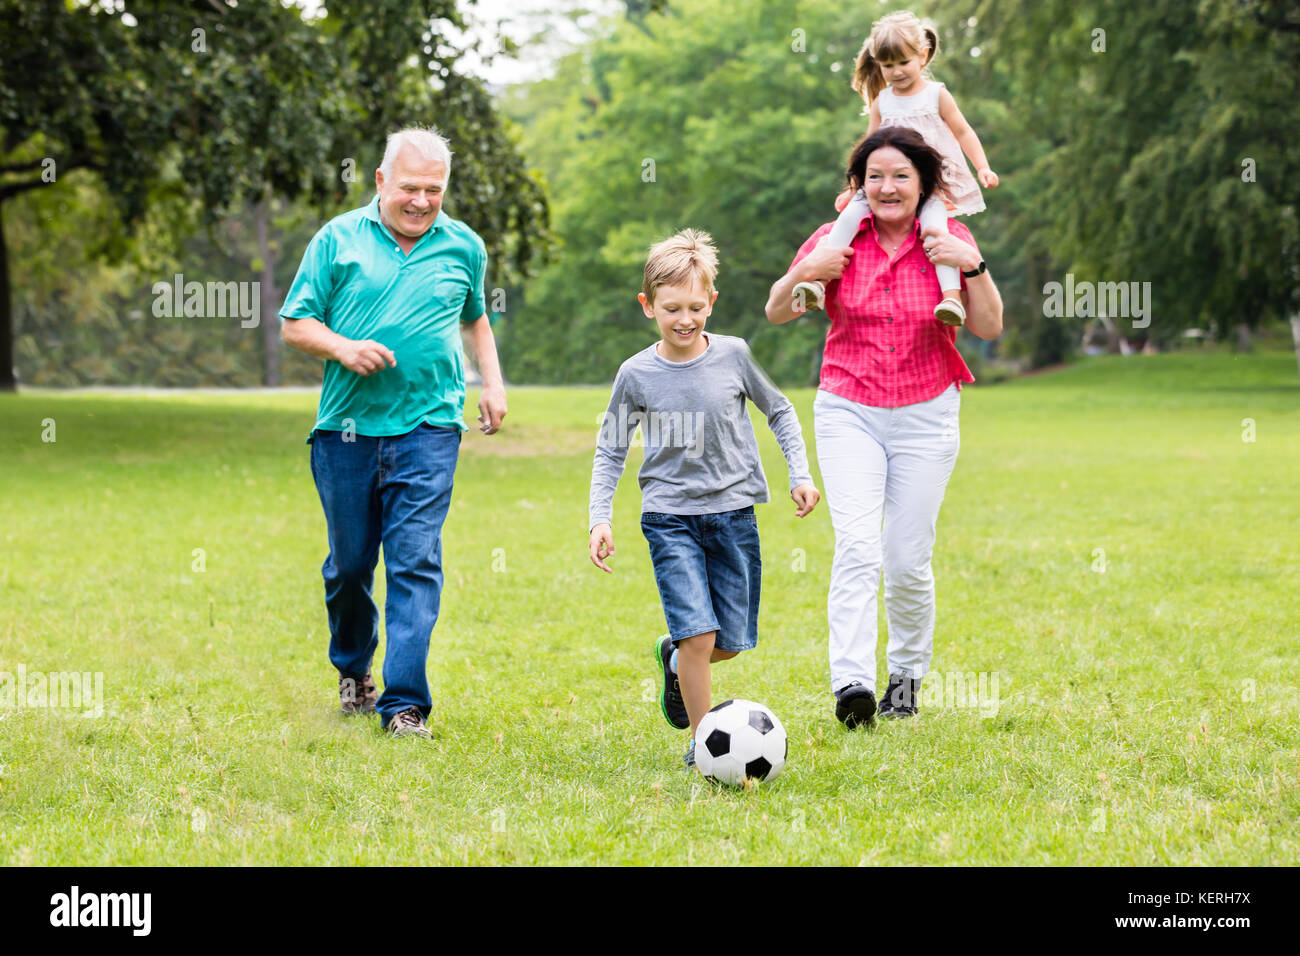 Happy Family Playing Soccer Game Together Running For Ball - Stock Image